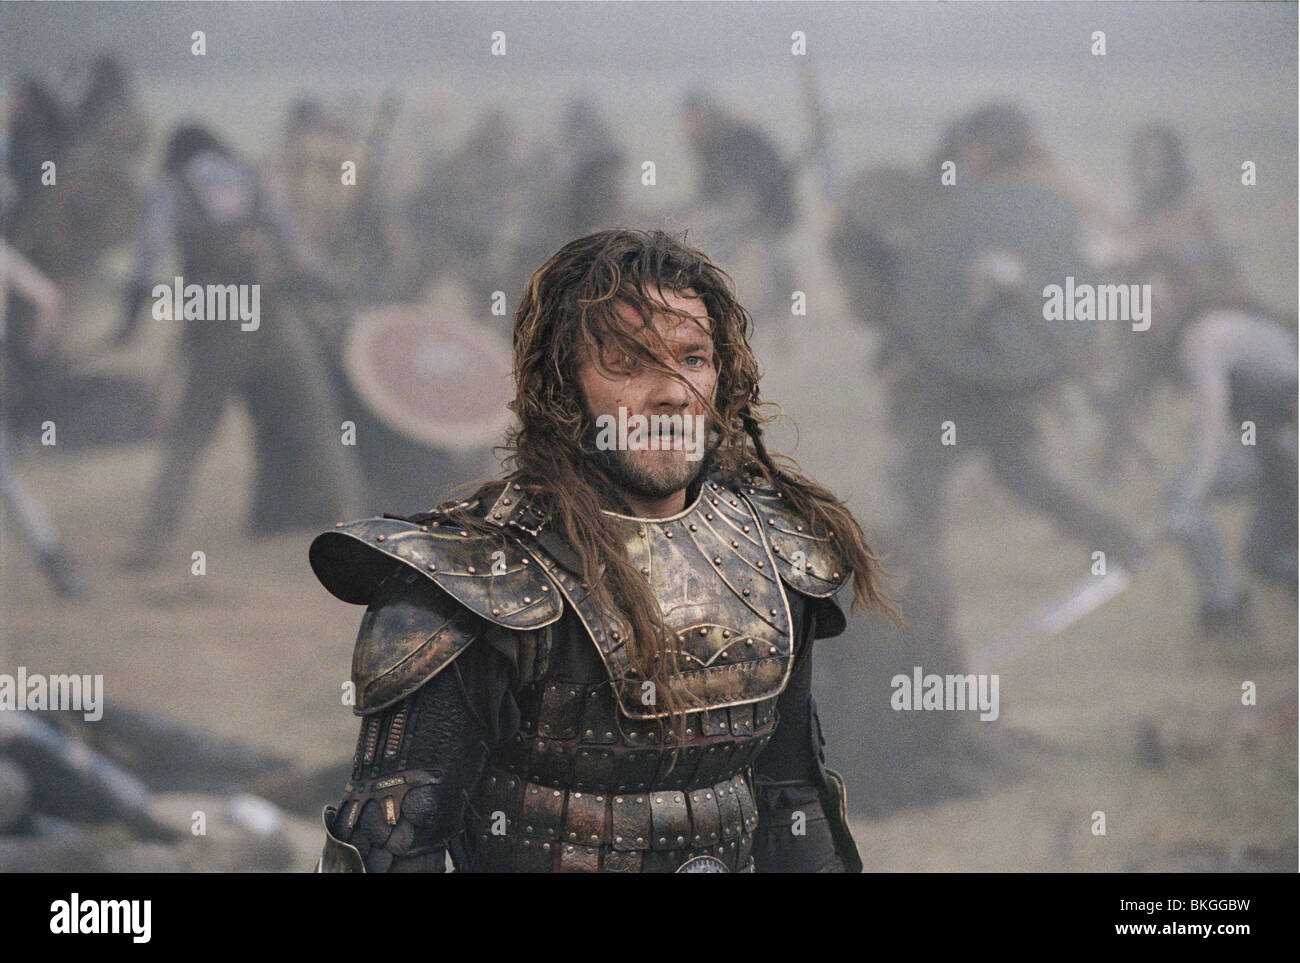 KING ARTHUR (2004) JOEL EDGERTON KART 001-29 Stock Photo